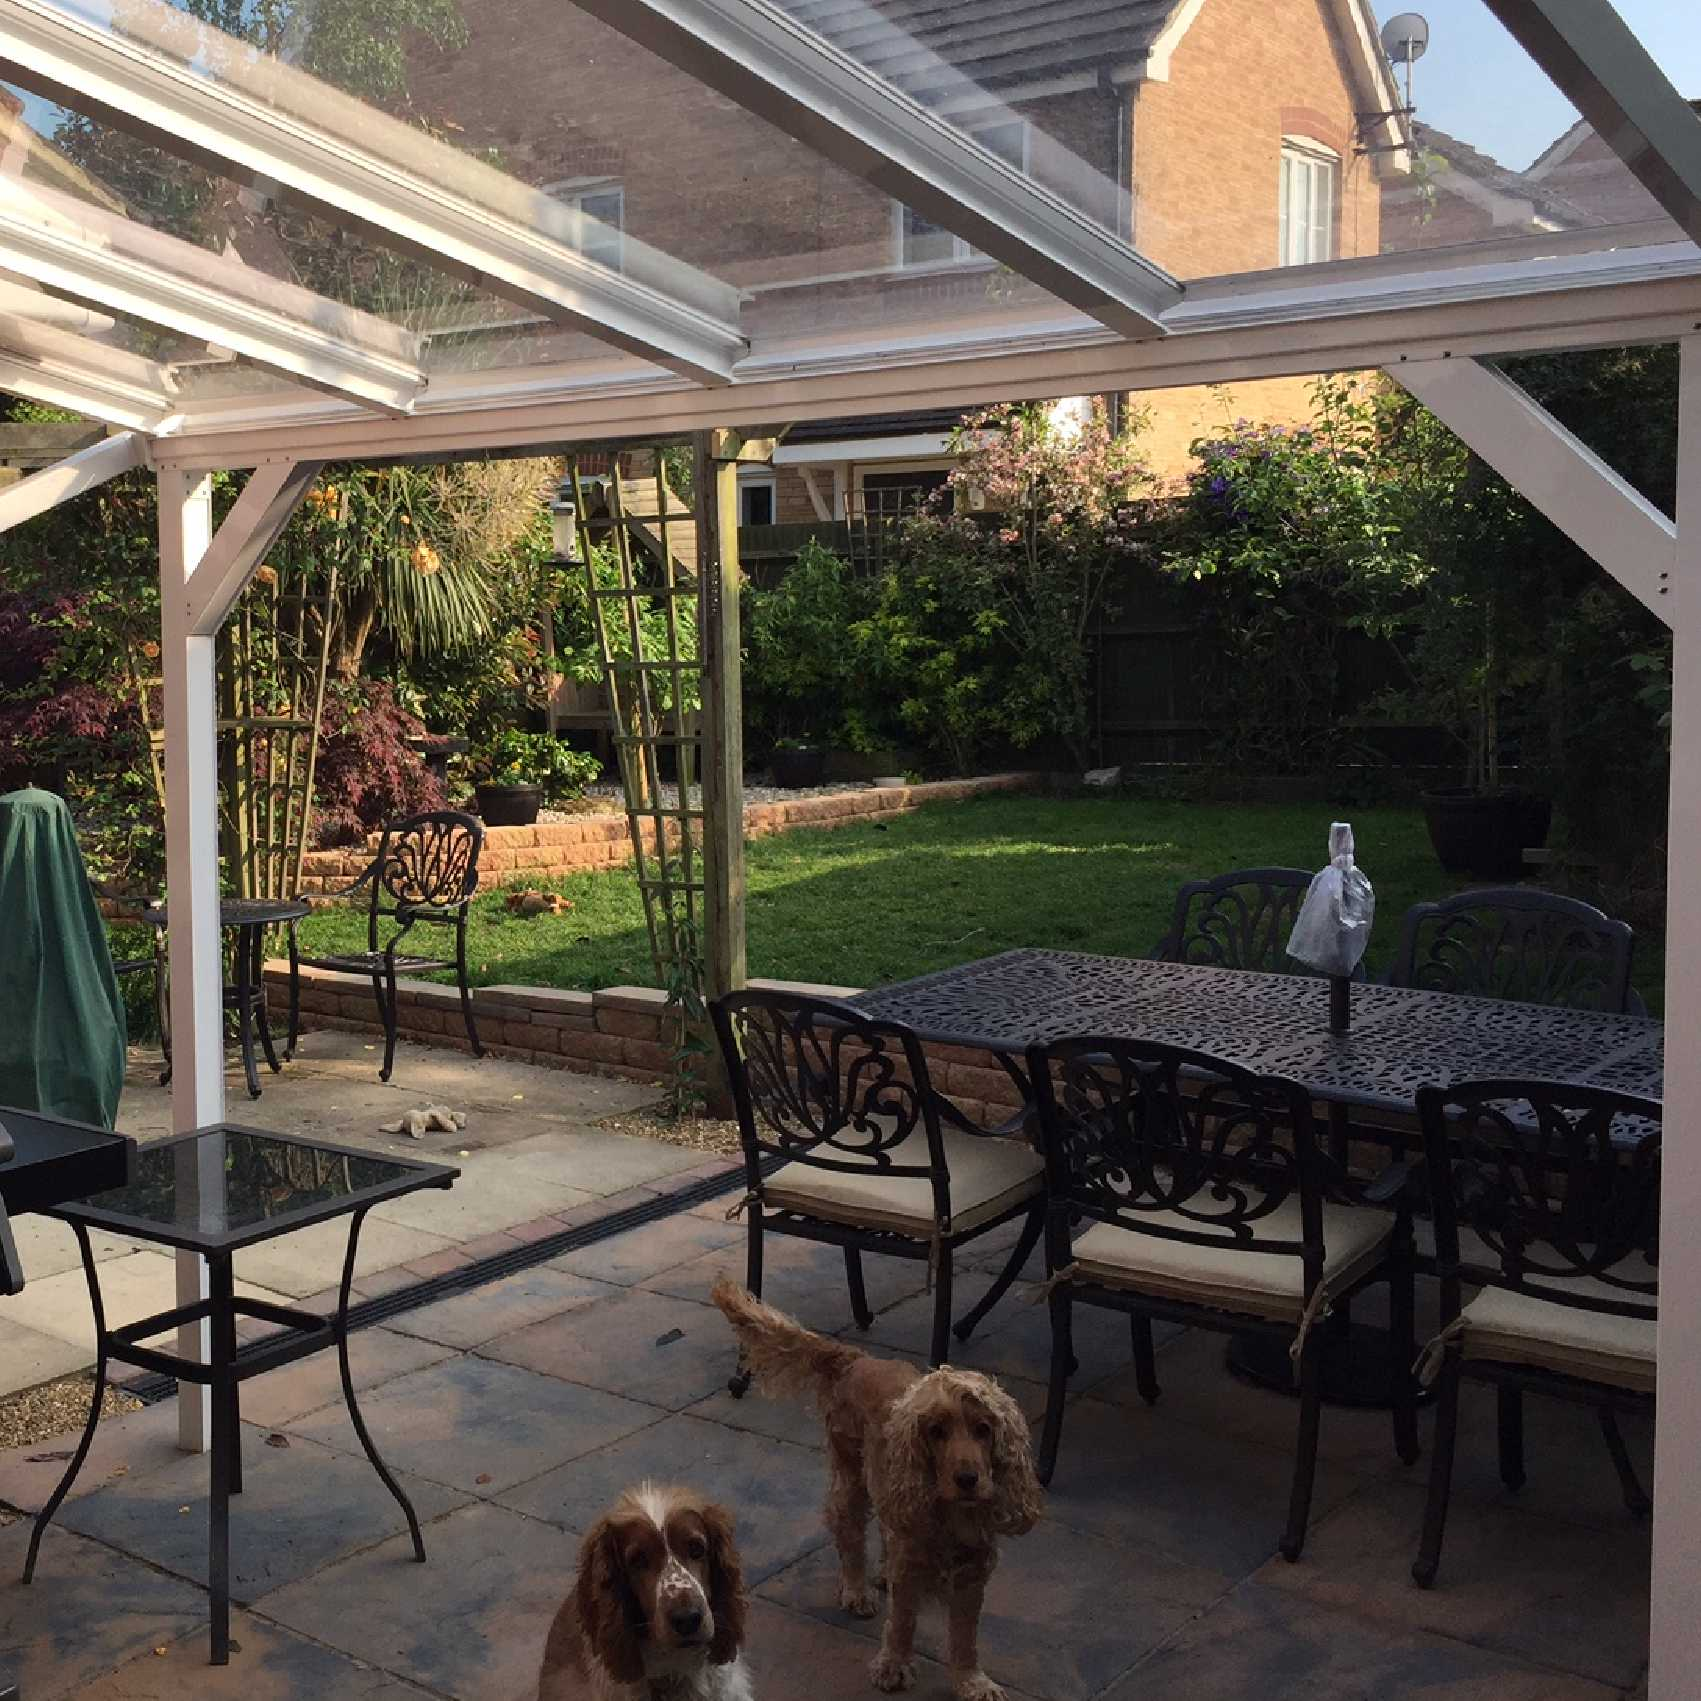 Affordable Omega Smart Lean-To Canopy UNGLAZED for 6mm Glazing - 7.7m (W) x 3.5m (P), (4) Supporting Posts